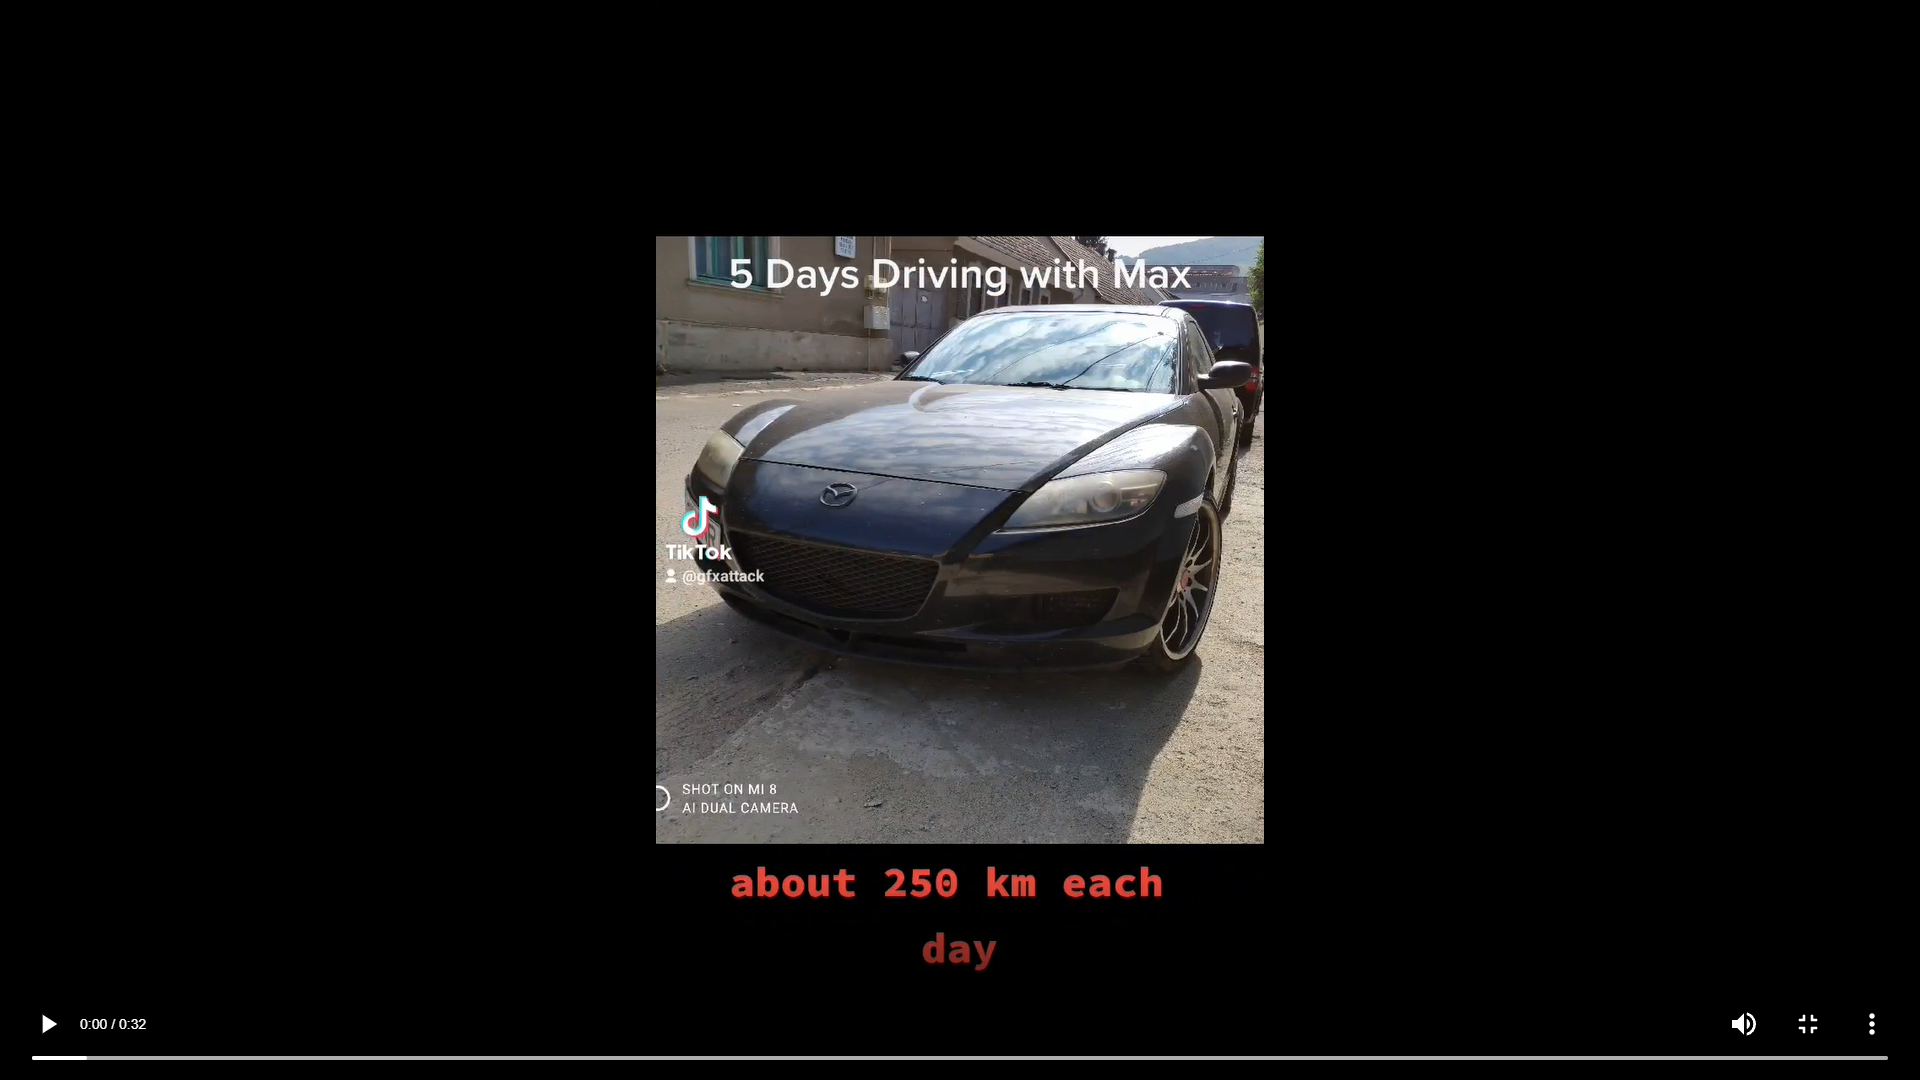 Max: the Mazda RX-8 and 5 Days of Driving Across the Country